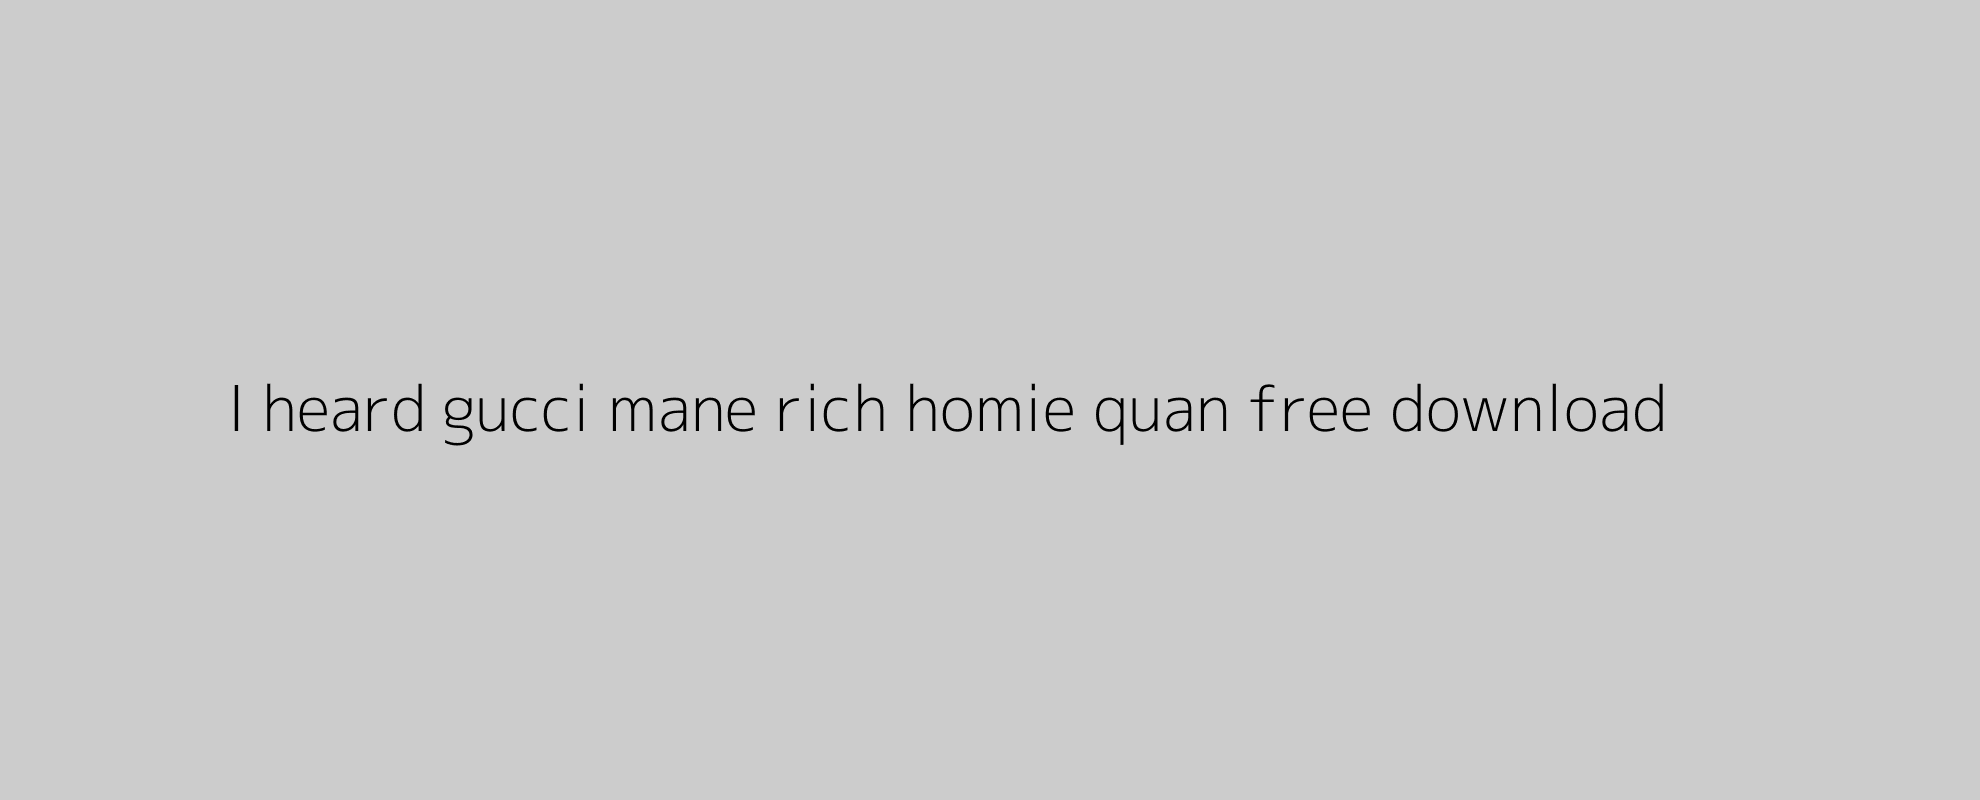 I heard gucci mane rich homie quan free download